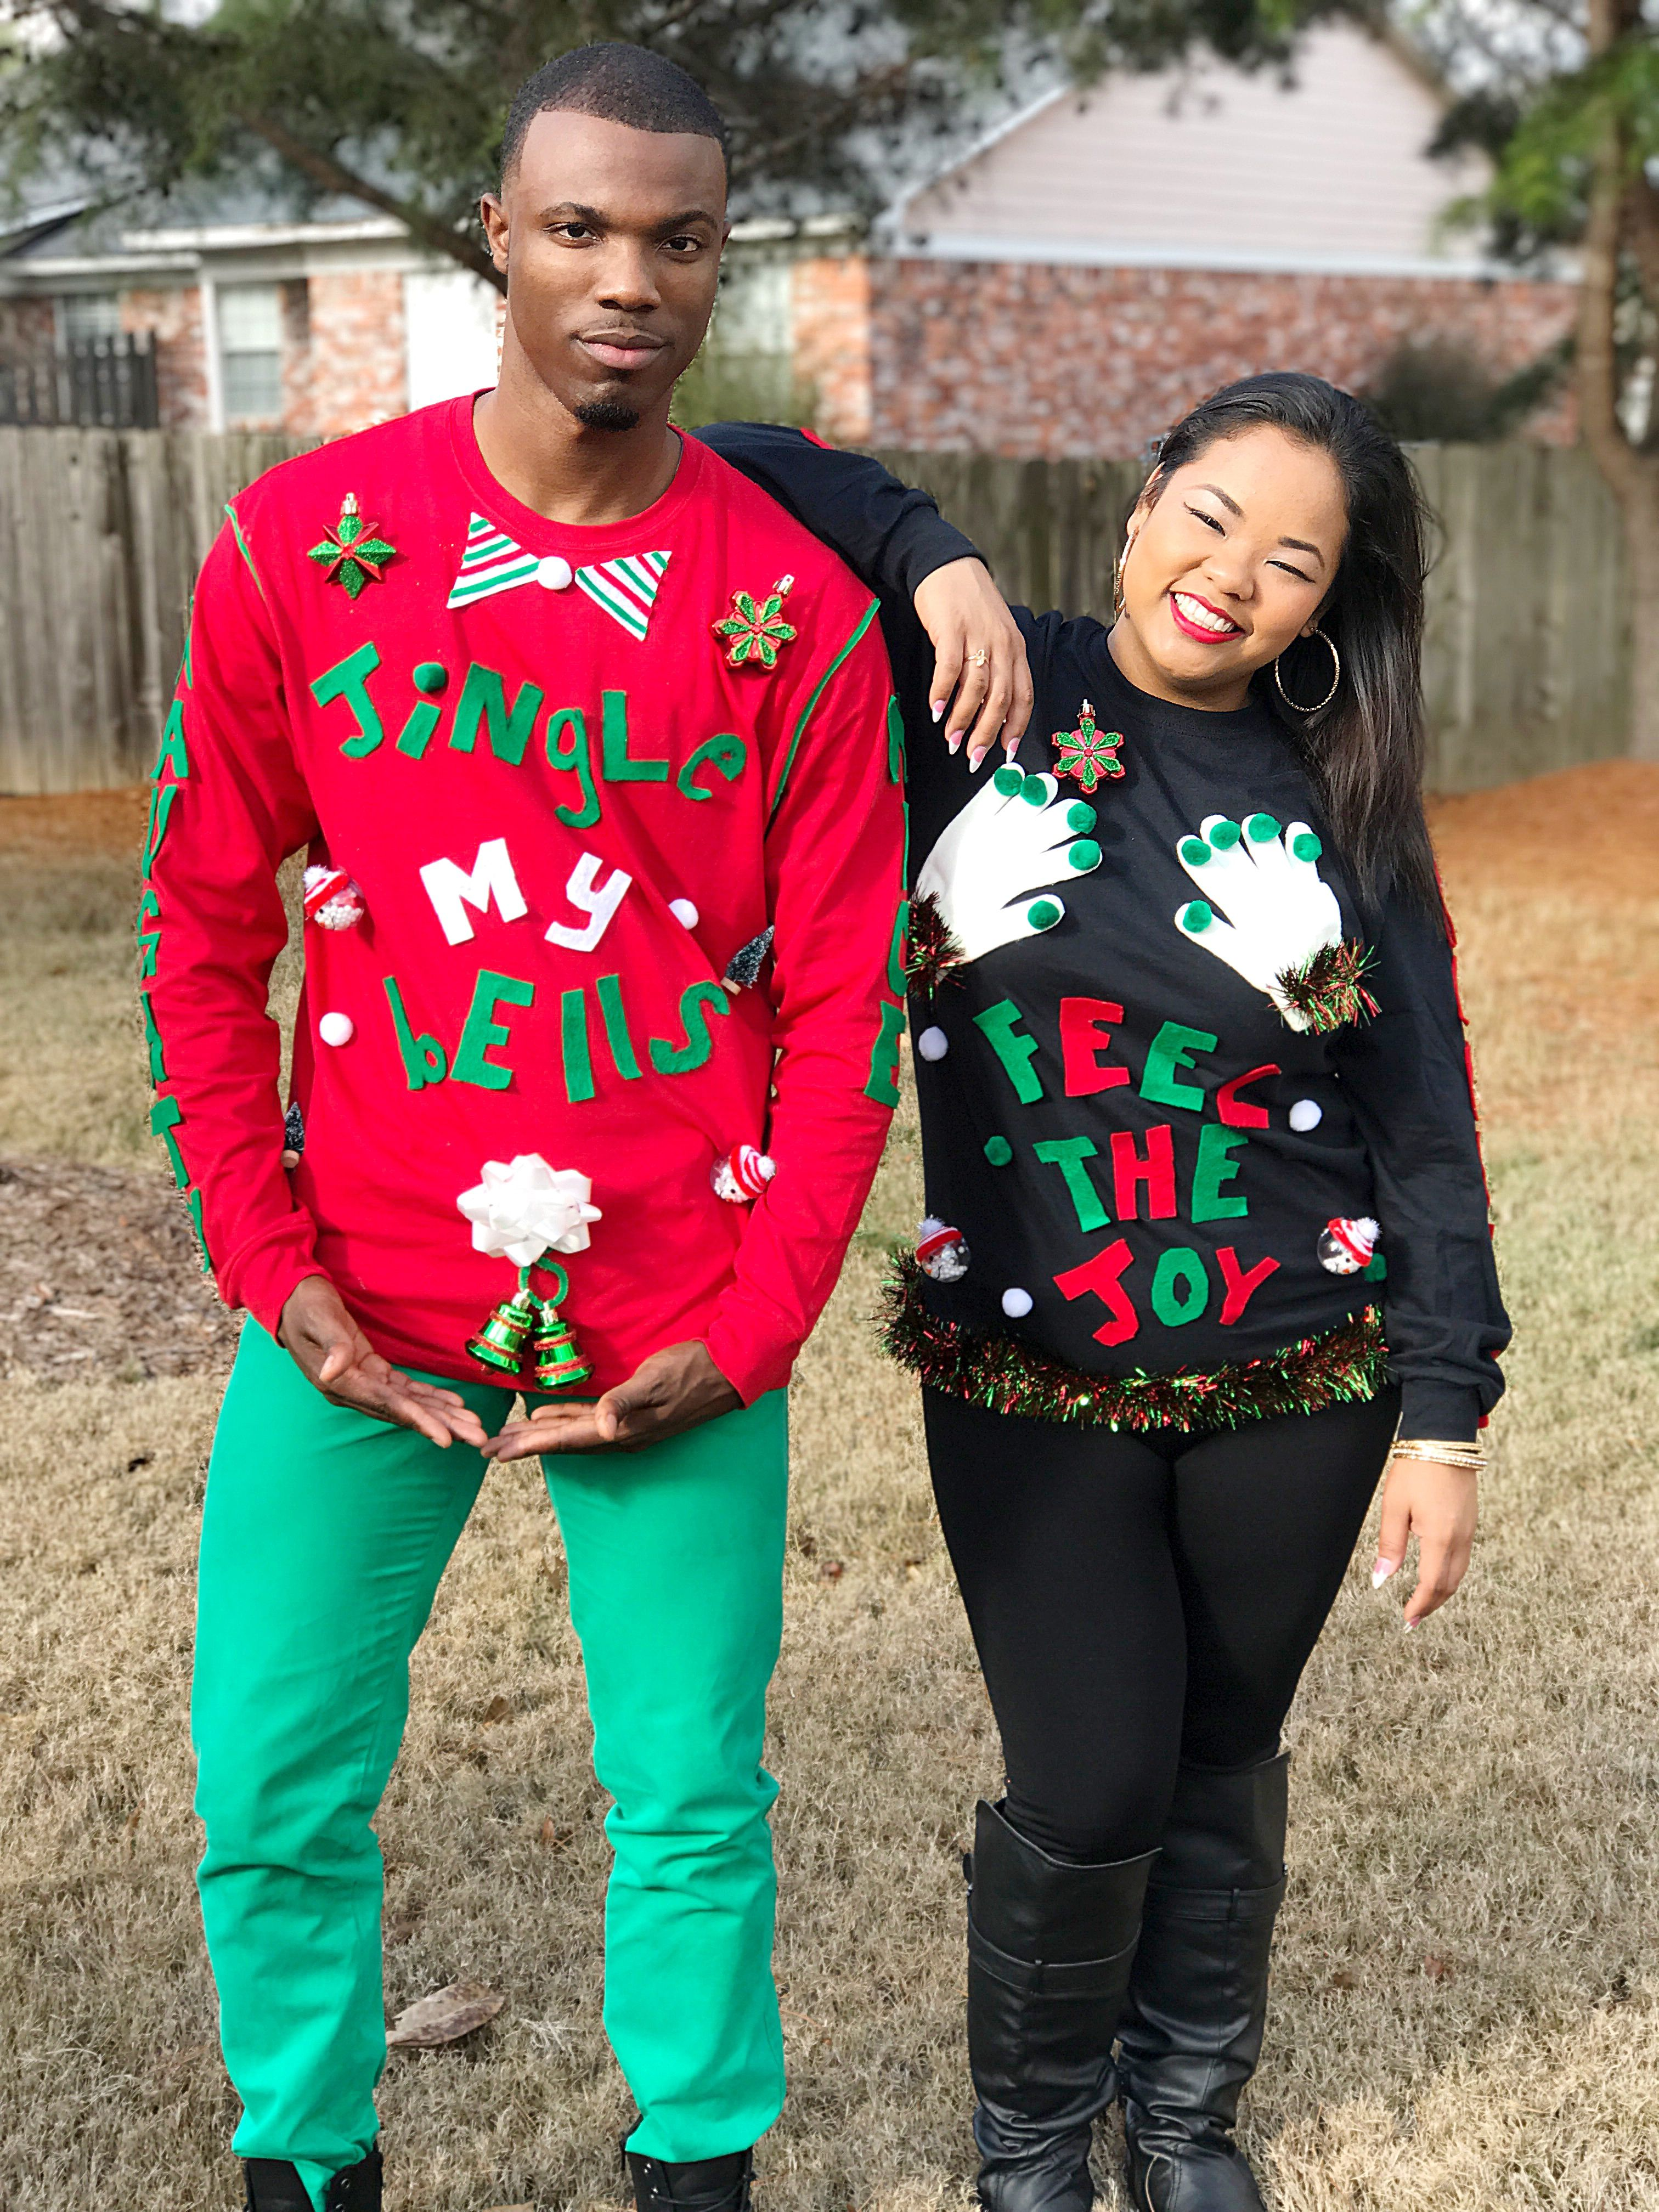 Pin on Ugly Christmas Sweater Couple Goals Jackson, MS